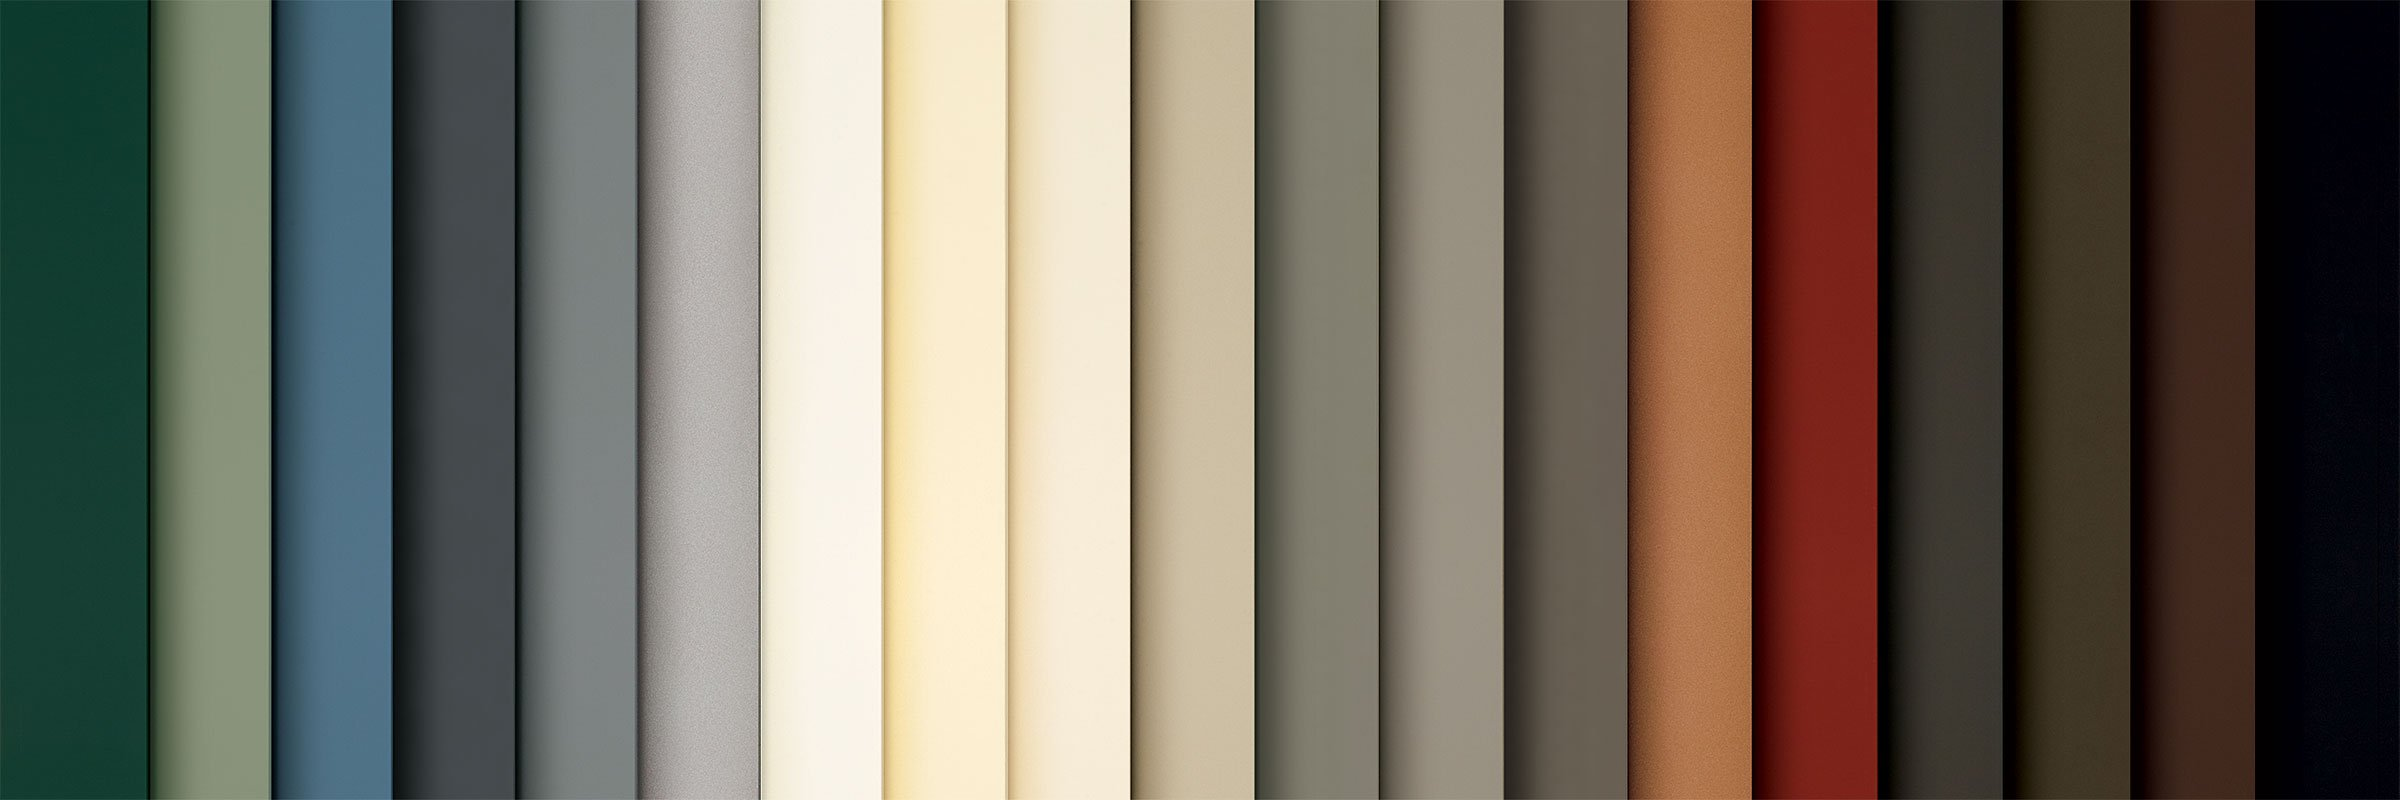 Sample Of Marvin Design Options Exterior Clad Finishes